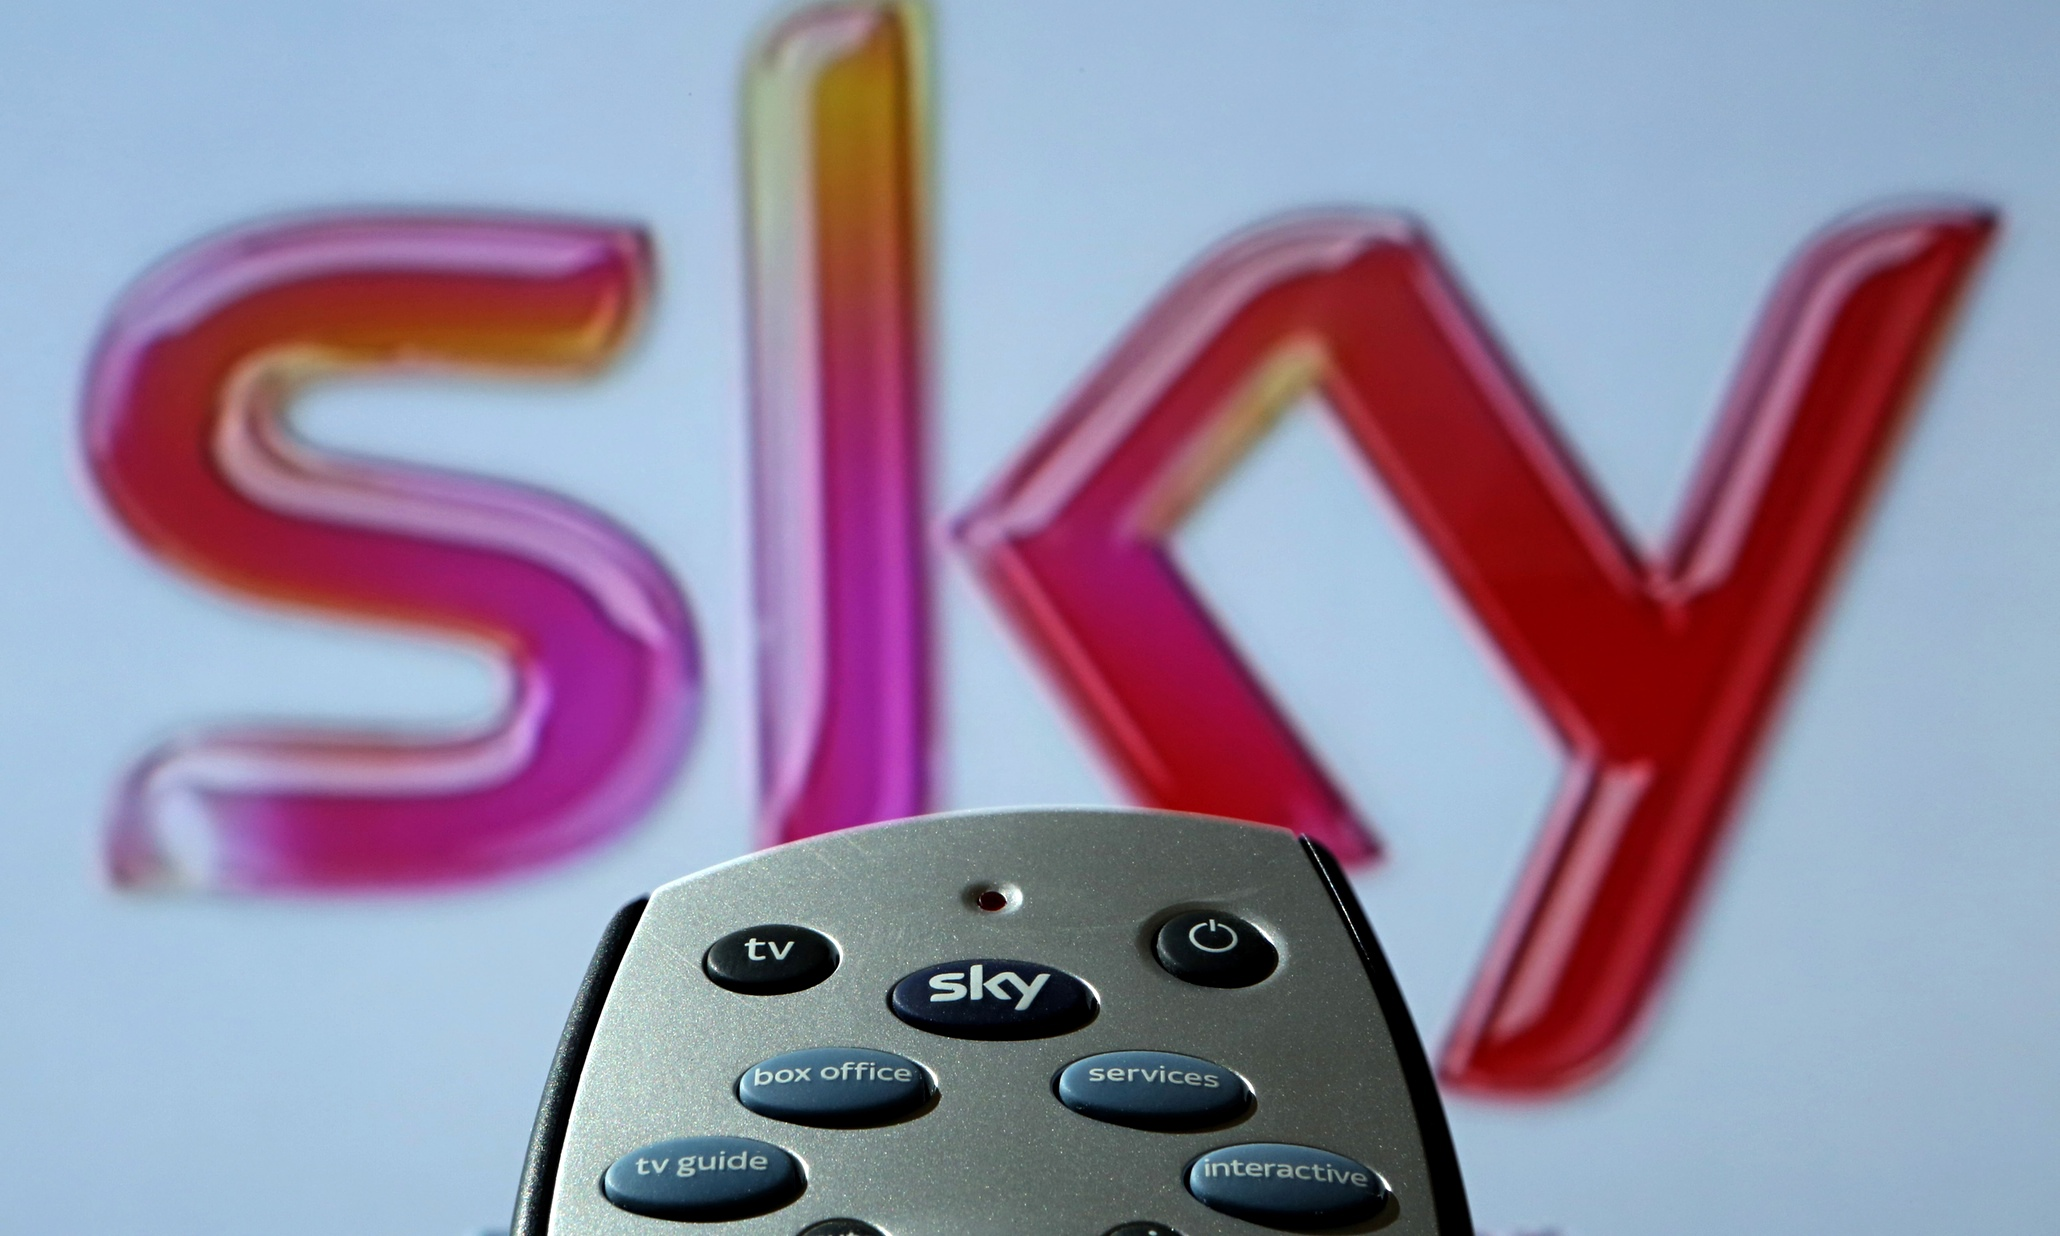 Sky moves into UK mobile-phone market after deal with O2 owner